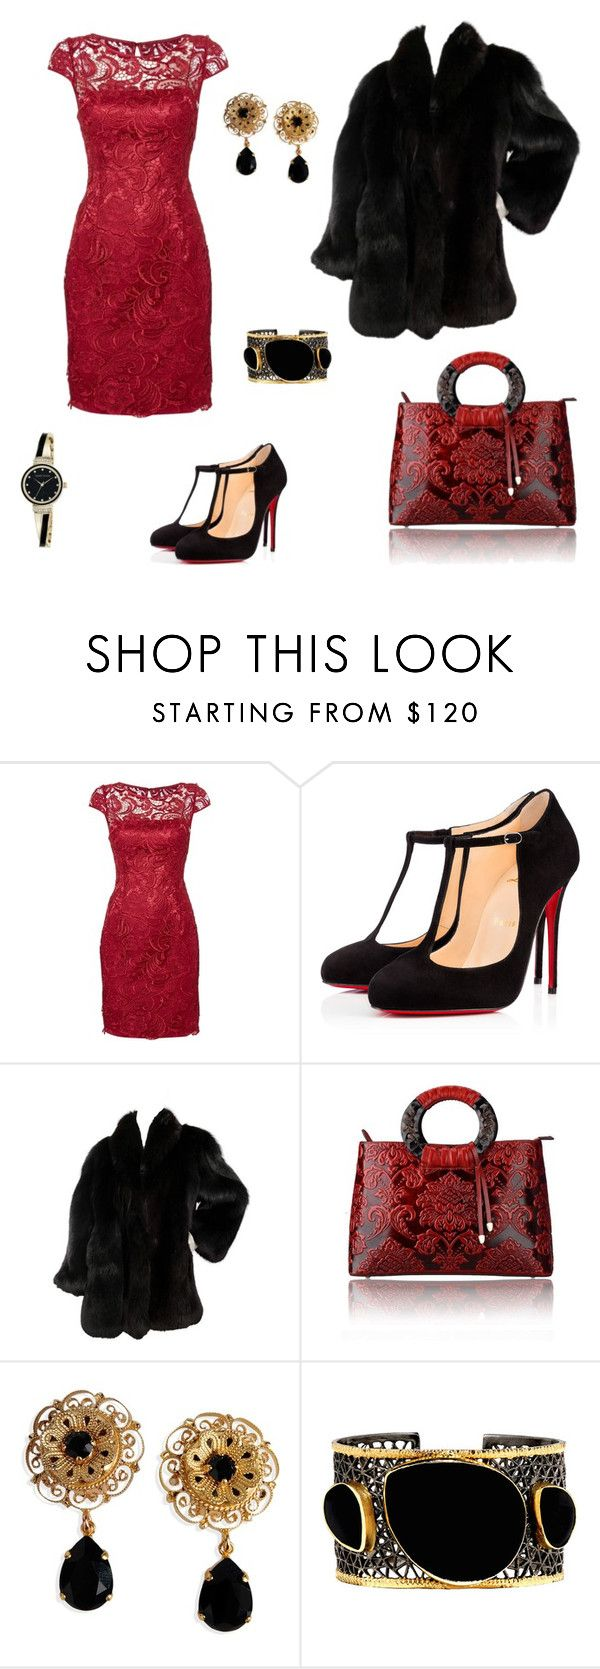 """""""Untitled #2"""" by pinkprincessemily ❤ liked on Polyvore featuring Adrianna Papell, Christian Louboutin, Dolce&Gabbana, Mela Artisans and Anne Klein"""